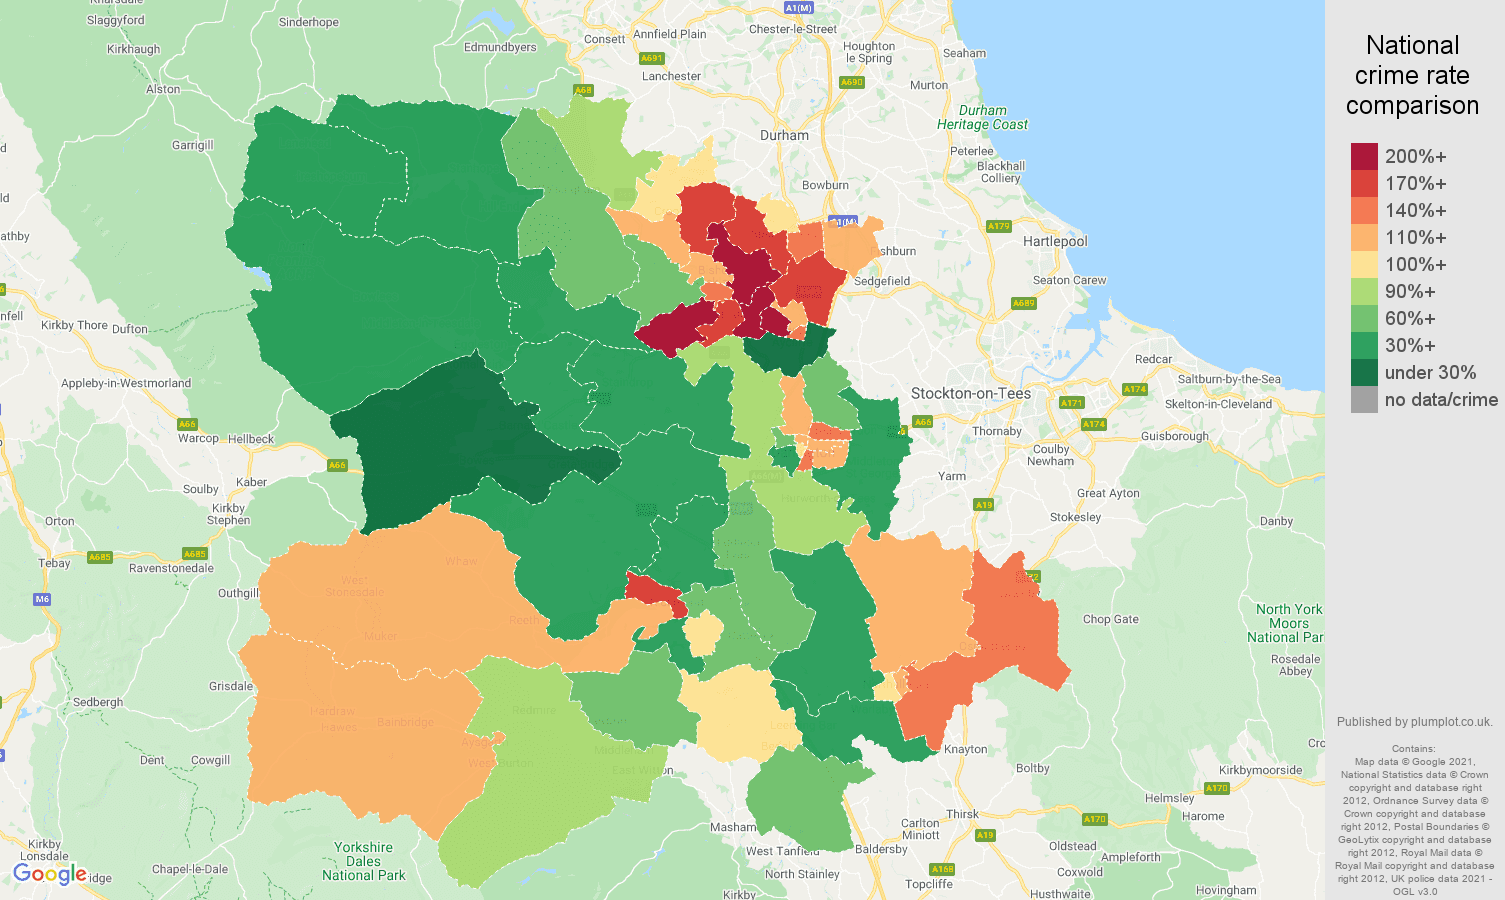 Darlington antisocial behaviour crime rate comparison map